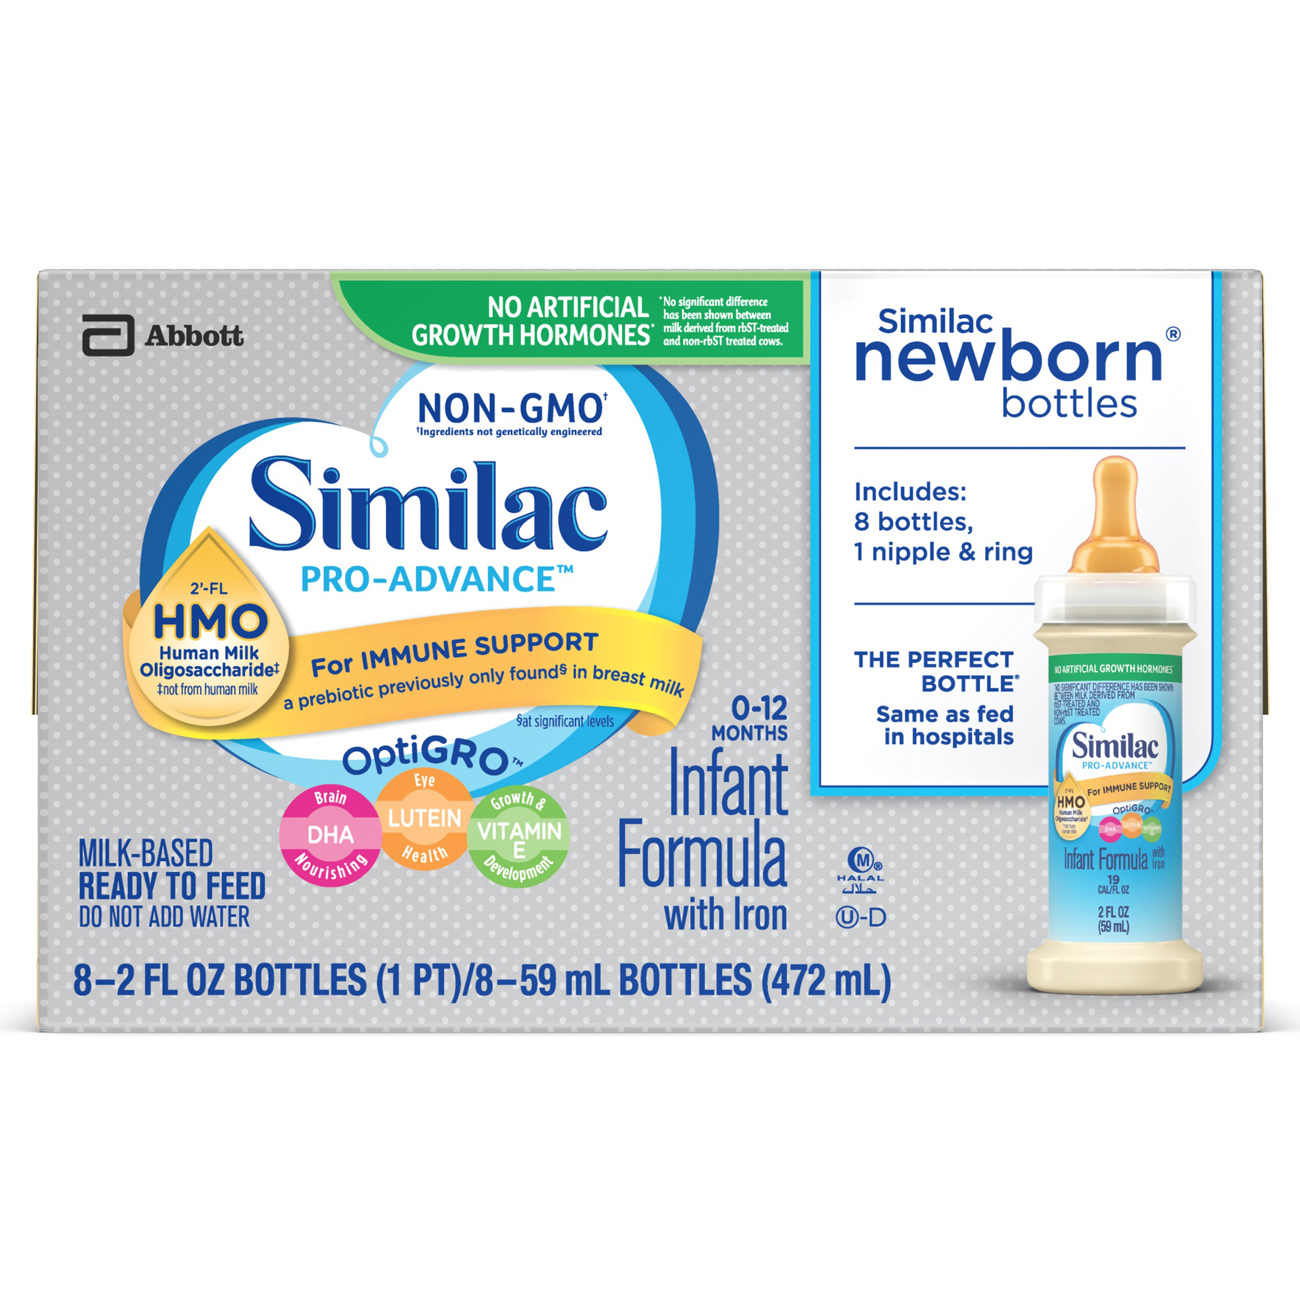 Similac Pro-Advance Infant Formula with 2'-FL Human Milk Oligosaccharide (HMO) for Immune Support, Ready to Feed, 2 fl oz. (1 box of 8 bottles)